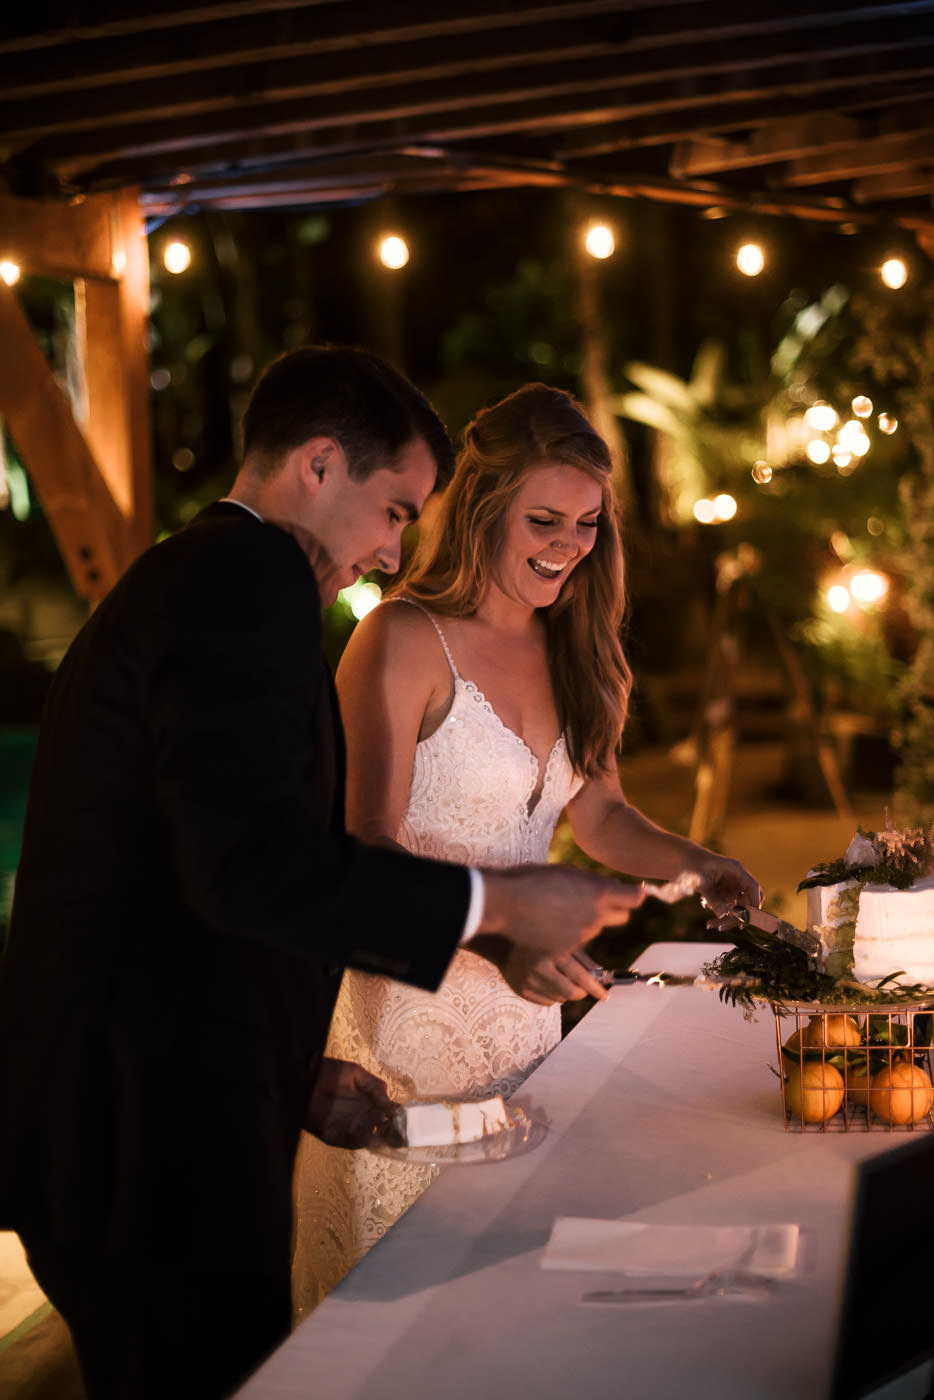 Couple has a blast cutting their beautiful wedding cake at the reception in Temecula California